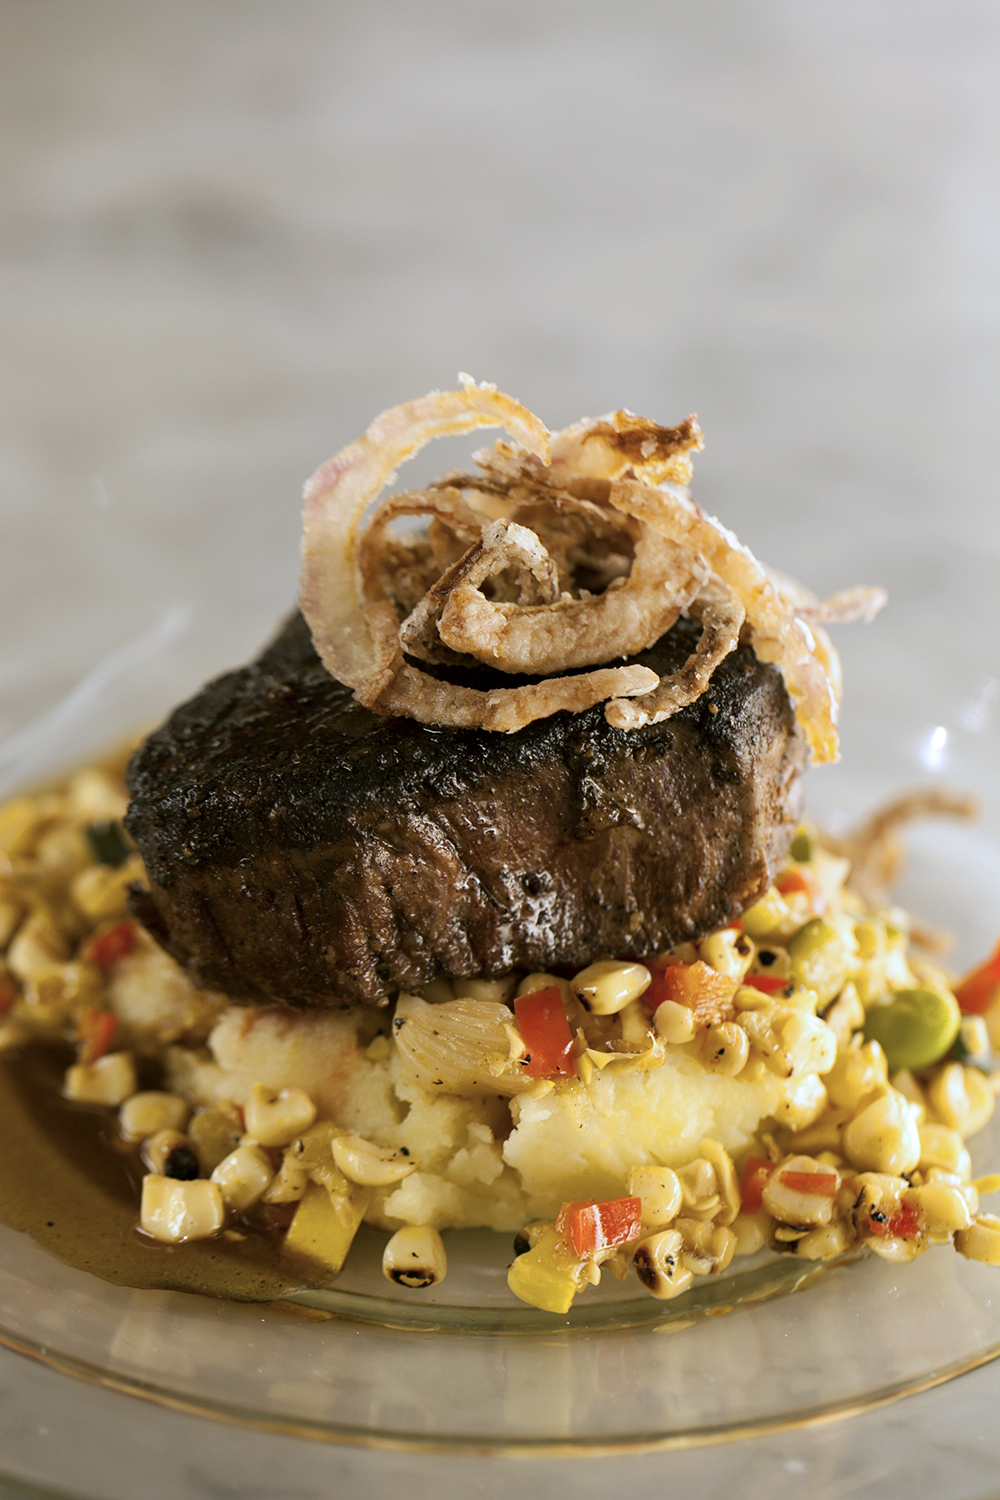 Blackened filet mignon with truffle mashed potatoes, charred corn and pepper succotash with bordelaise sauce